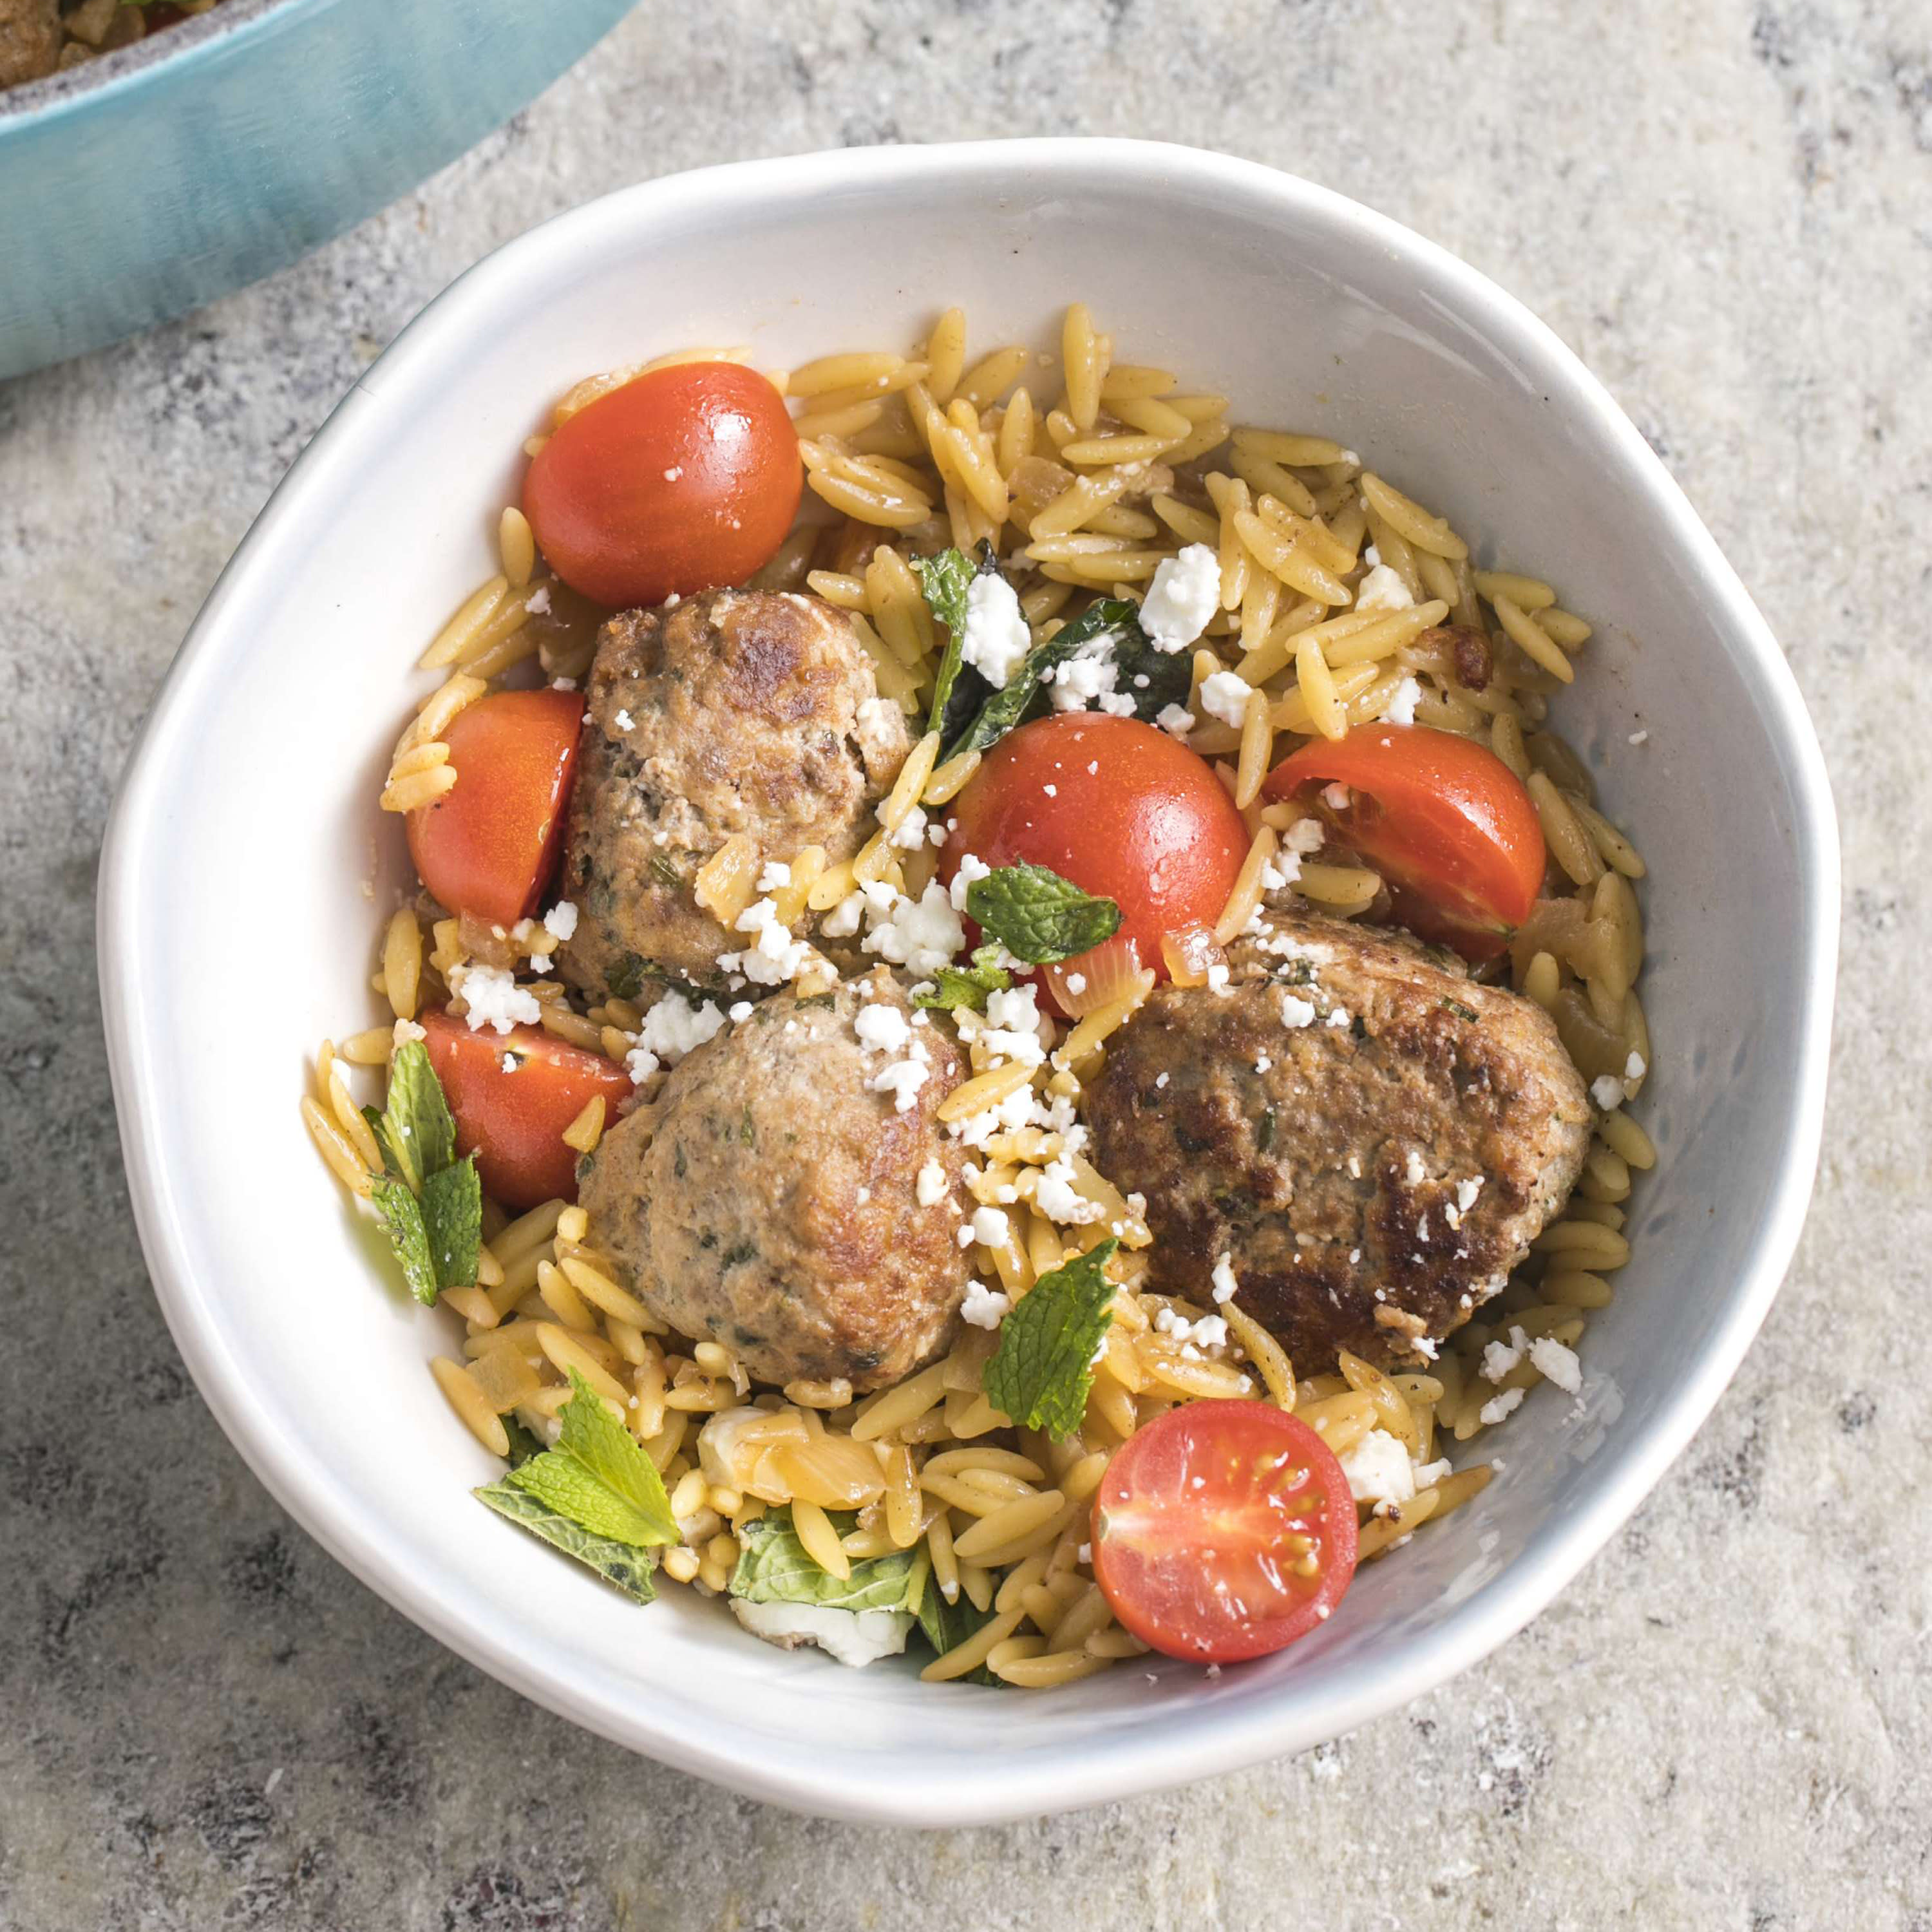 Mix Up Your Pasta And Meatballs With Some Lamb And Orzo